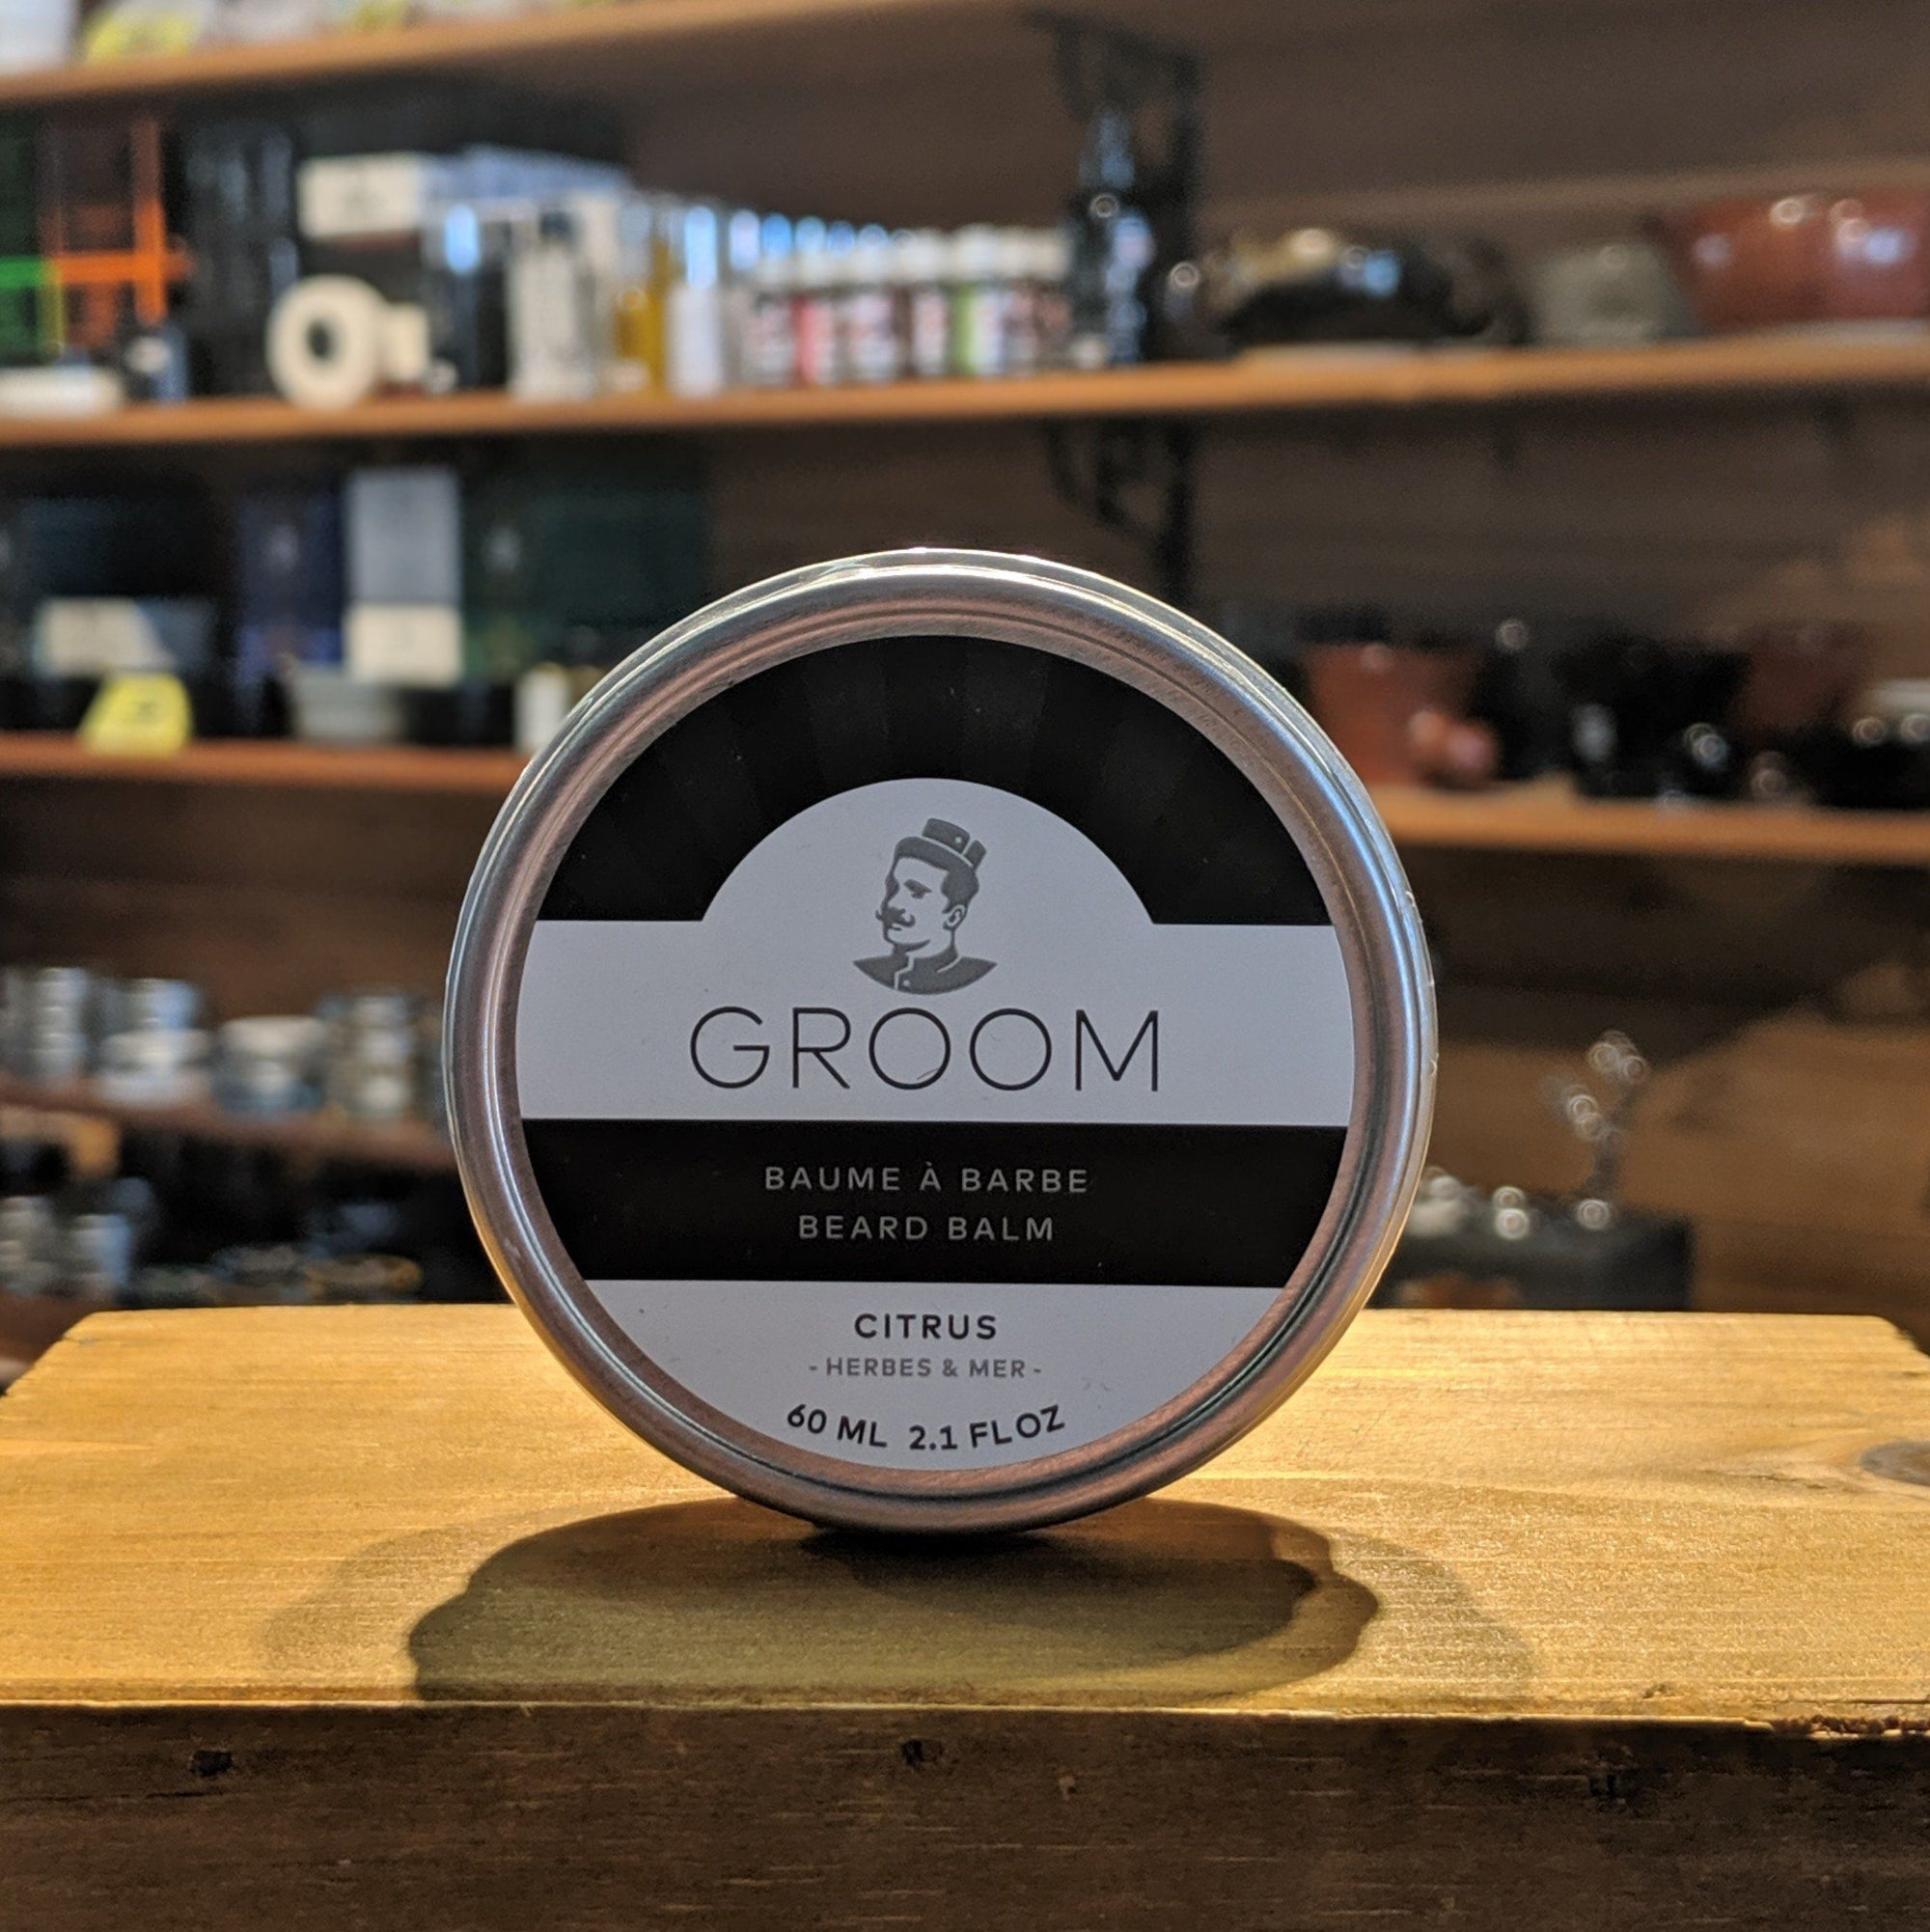 Groom Beard Balm - Citrus 60ml